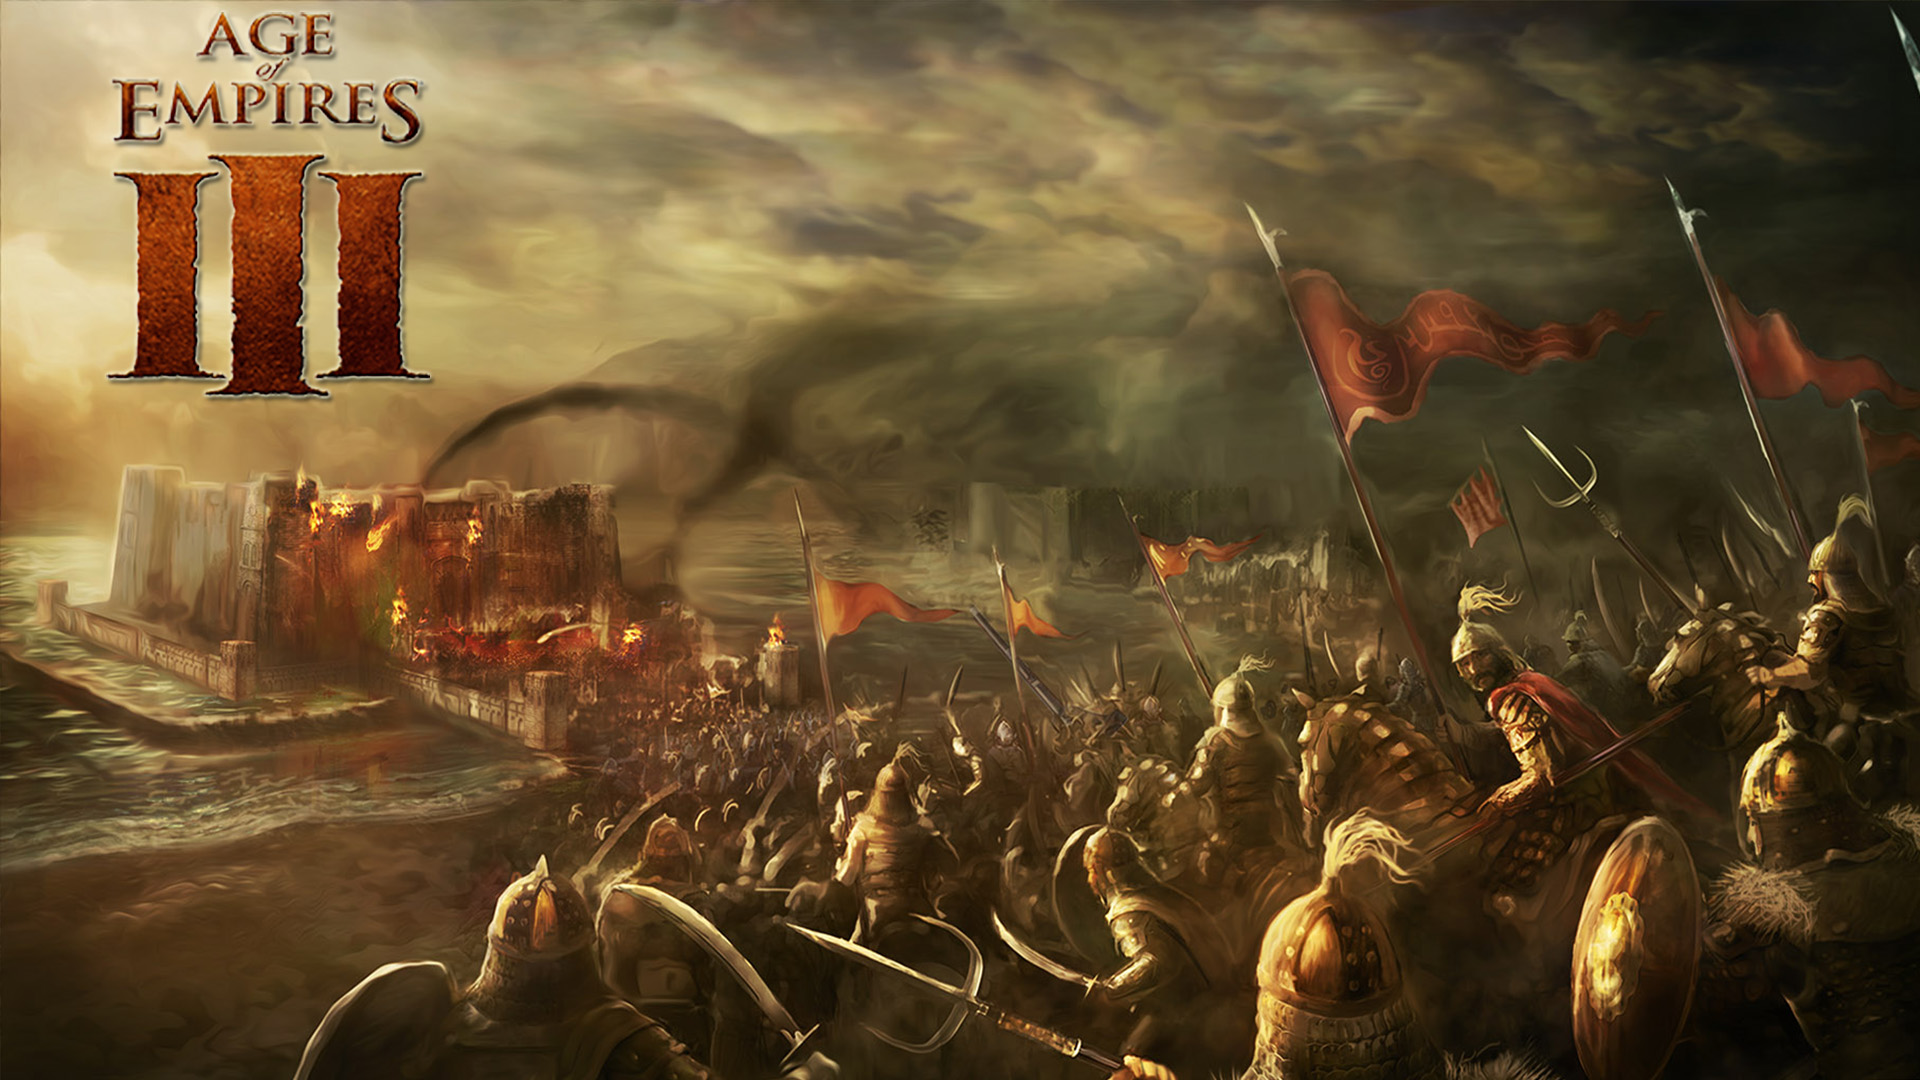 Age Of Empires Wallpaper: Age Of Empires III HD Wallpaper